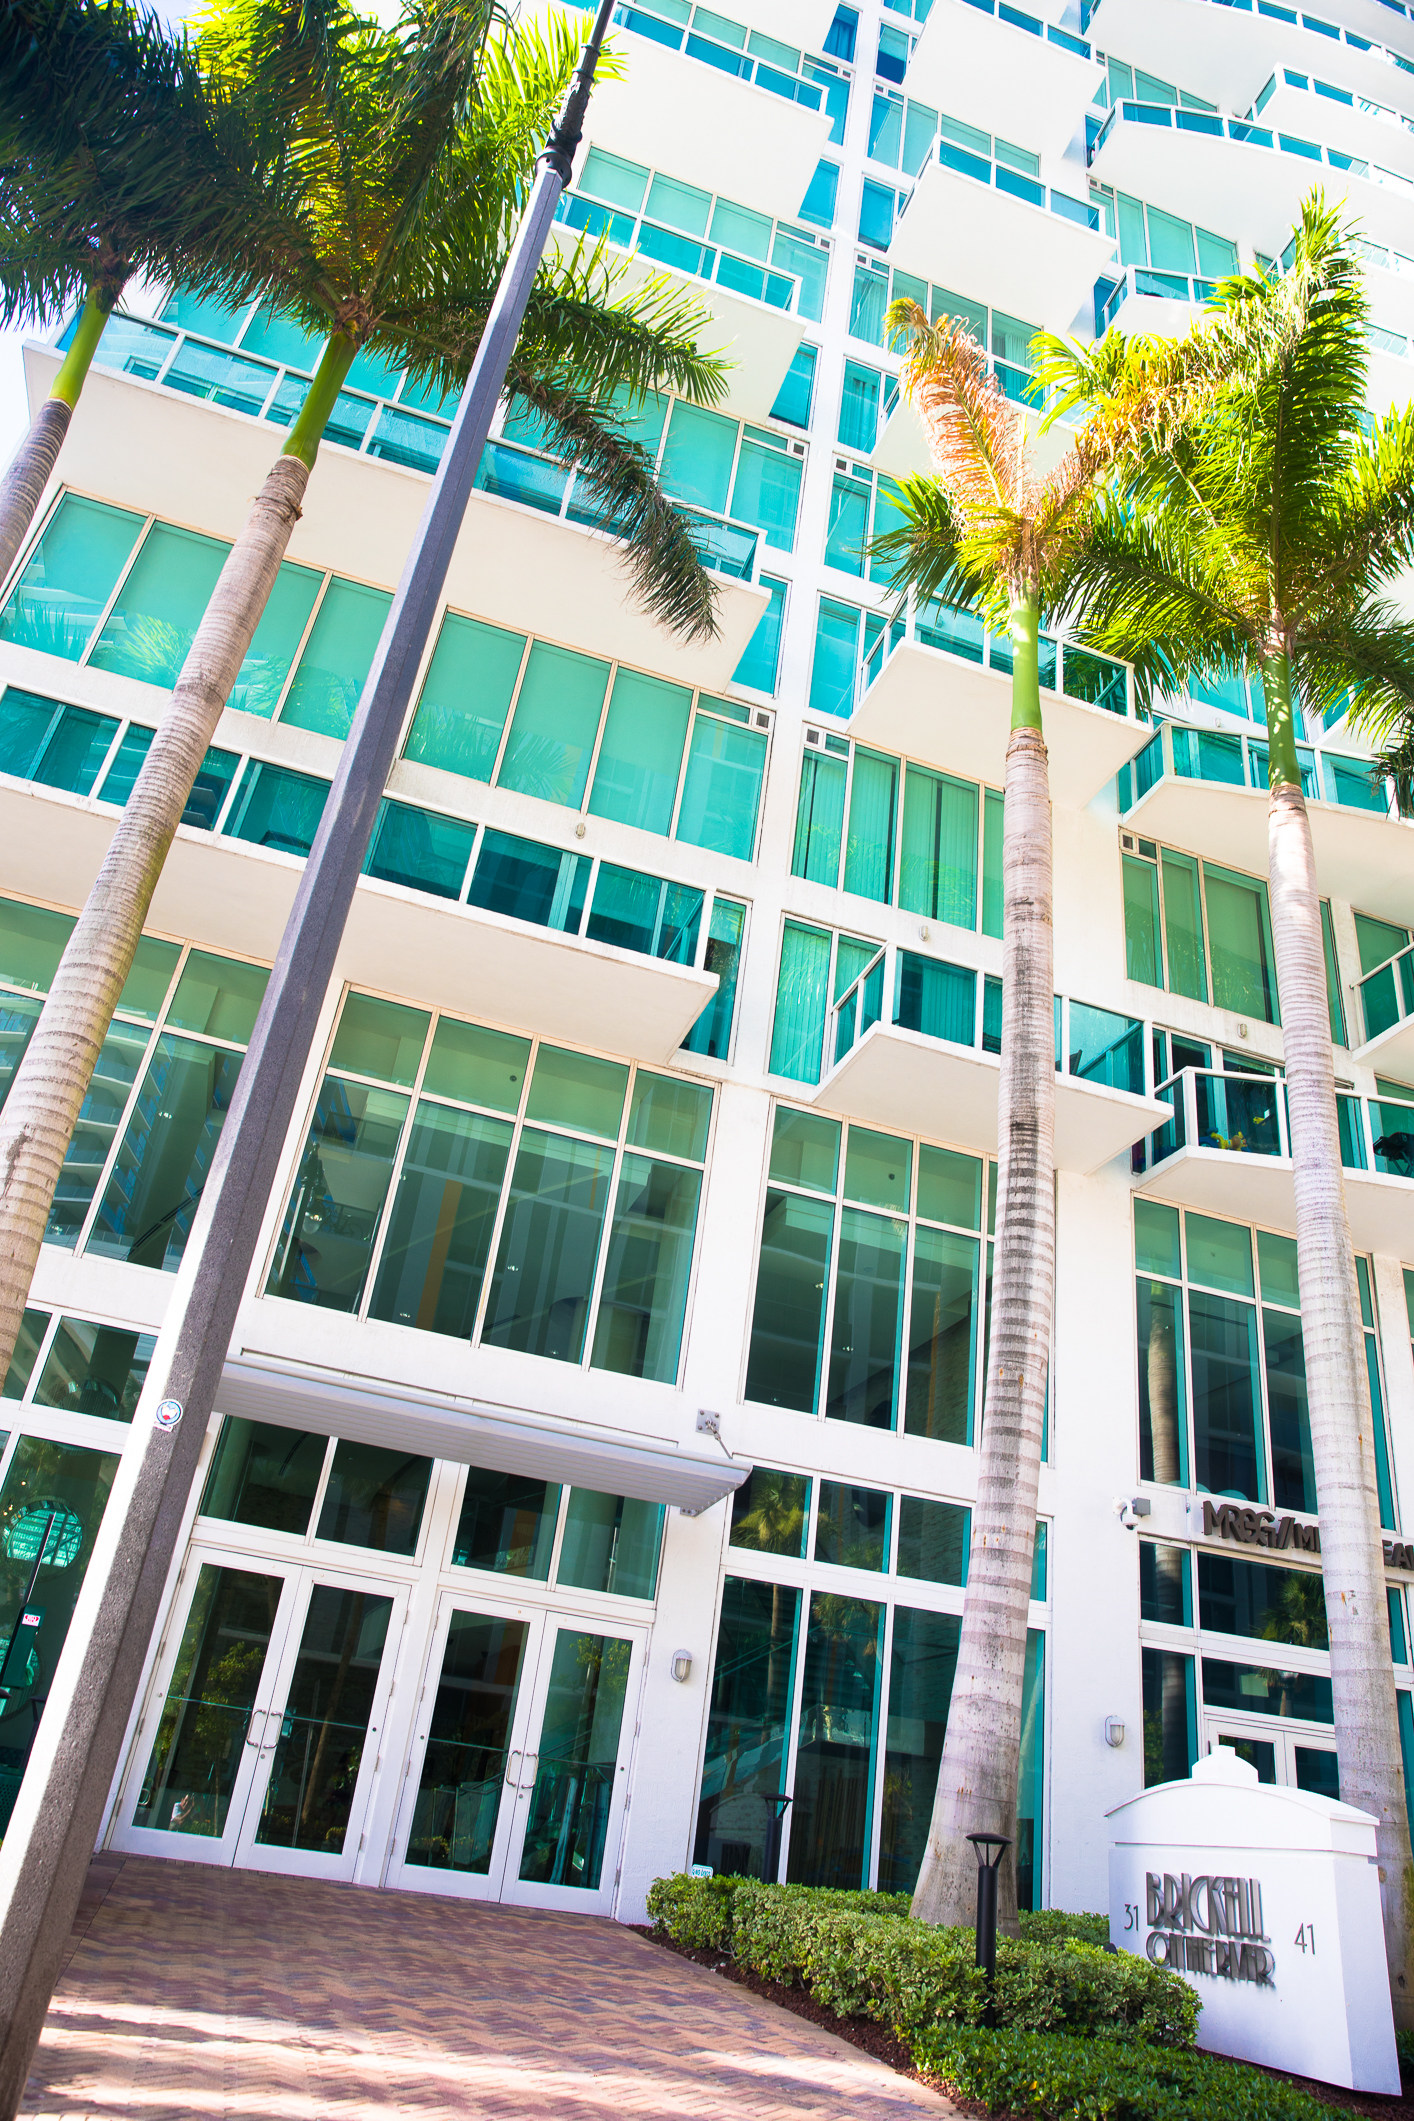 IN THE HEART OF BRICKELL - ONE BLOCK FROM THE NEW BRICKELL CITY CENTRE